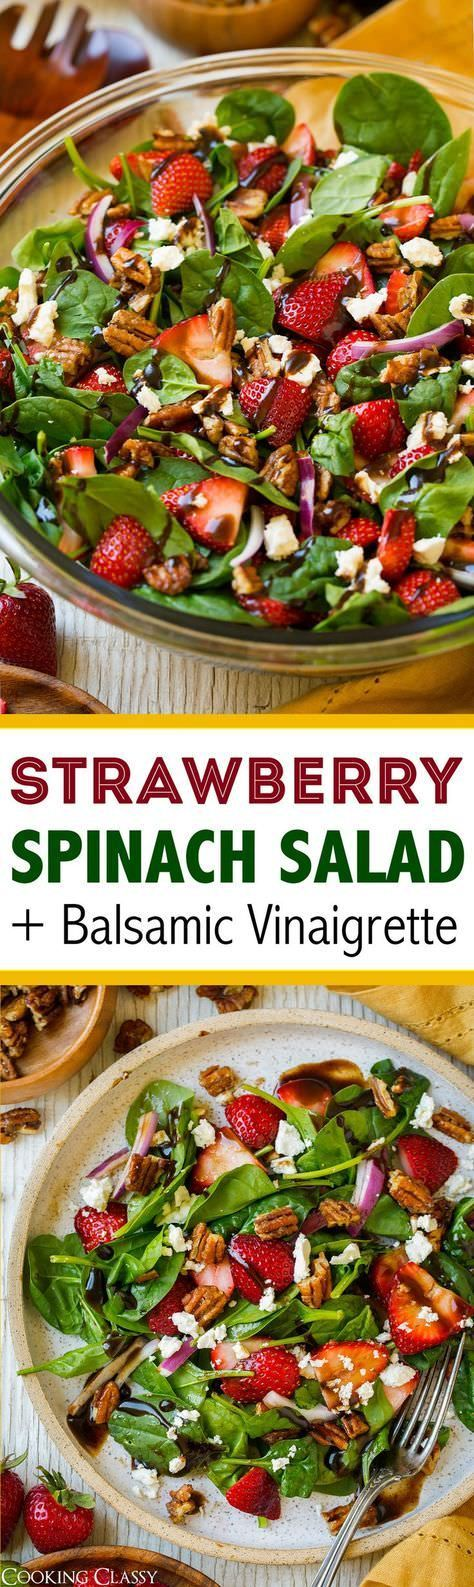 Made with fresh spinach and strawberries, crunchy candied pecans, salty tangy feta, red onion and a delicious balsamic vinaigrette. A perfect summer salad!